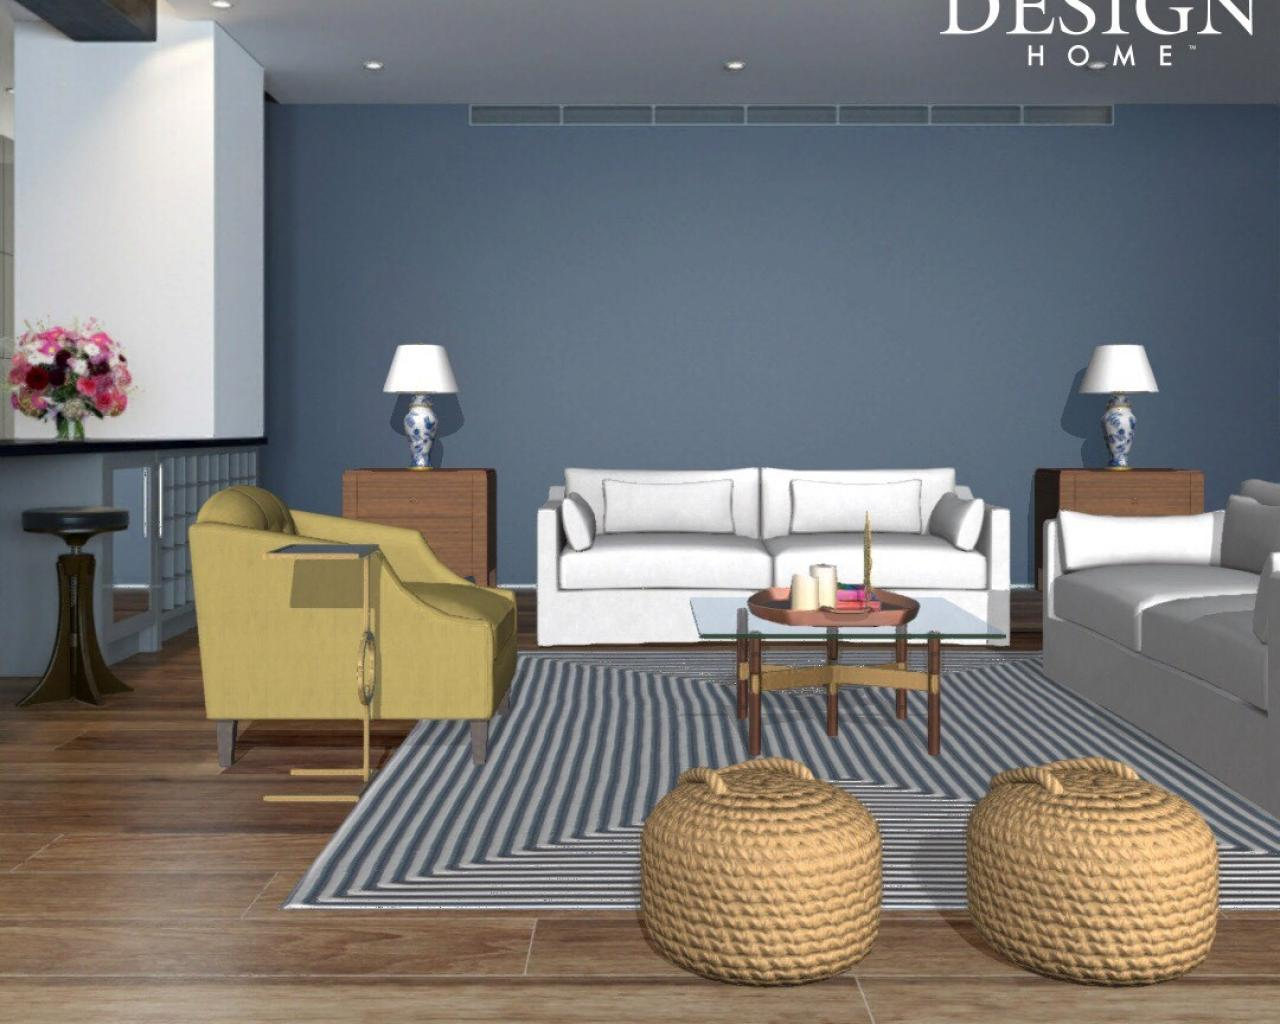 Be an interior designer with design home app hgtv 39 s for Home design images